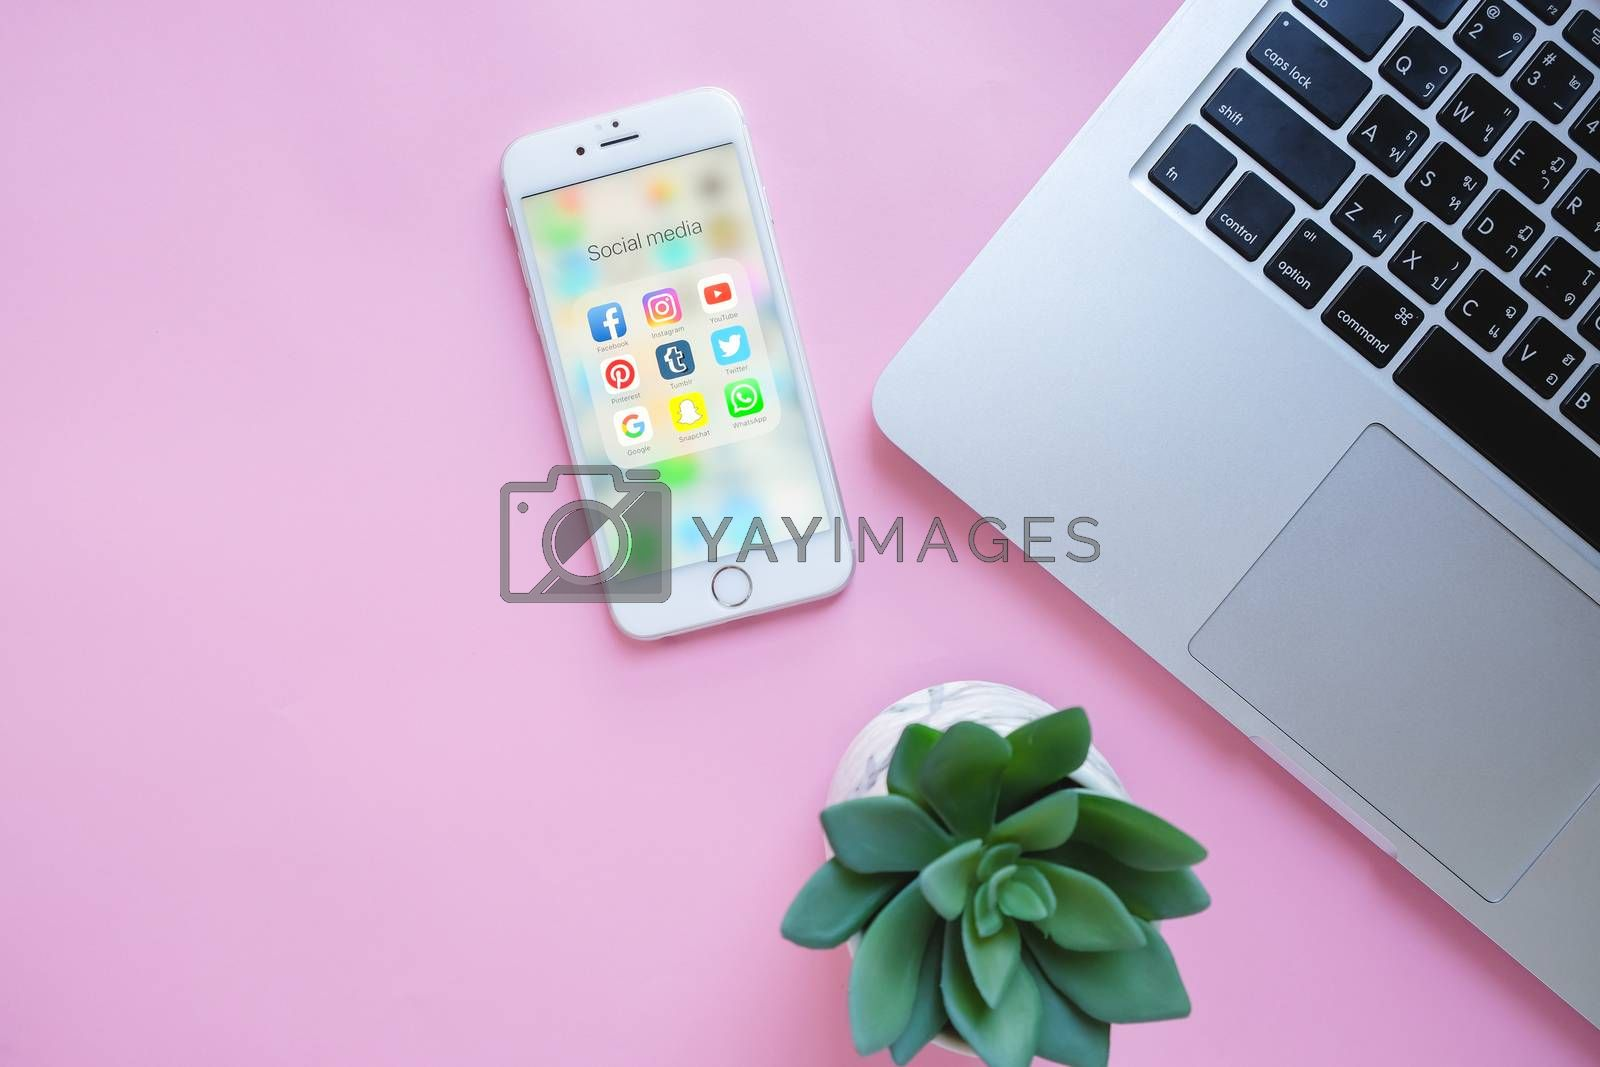 BANGKOK, THAILAND - NOVEMBER 28, 2016:  Group of Popular Social networks icons showing on Apple iPhone 6s screen with laptop and green plant on pink background, Social media are most popular tool for communication.